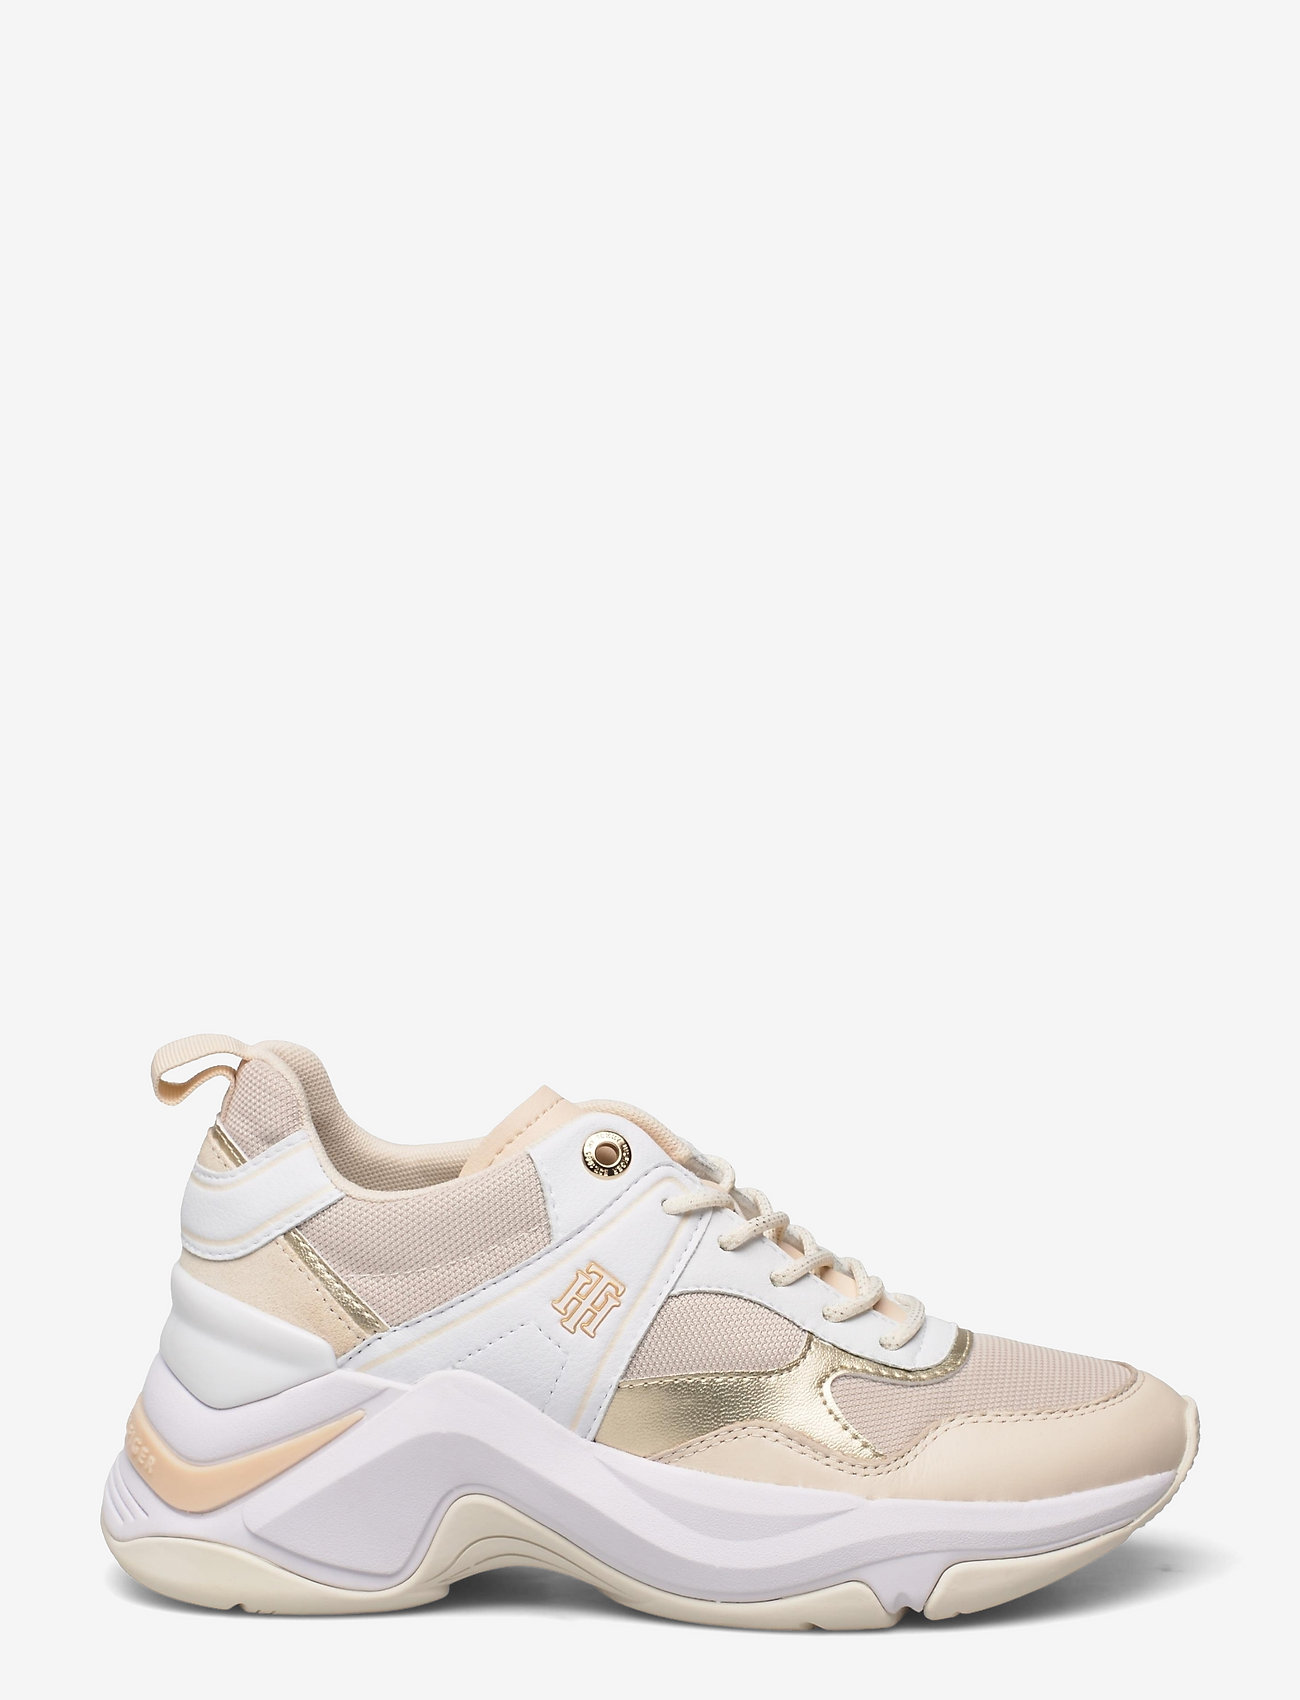 Tommy Hilfiger - FASHION WEDGE SNEAKER - low top sneakers - sugarcane - 1